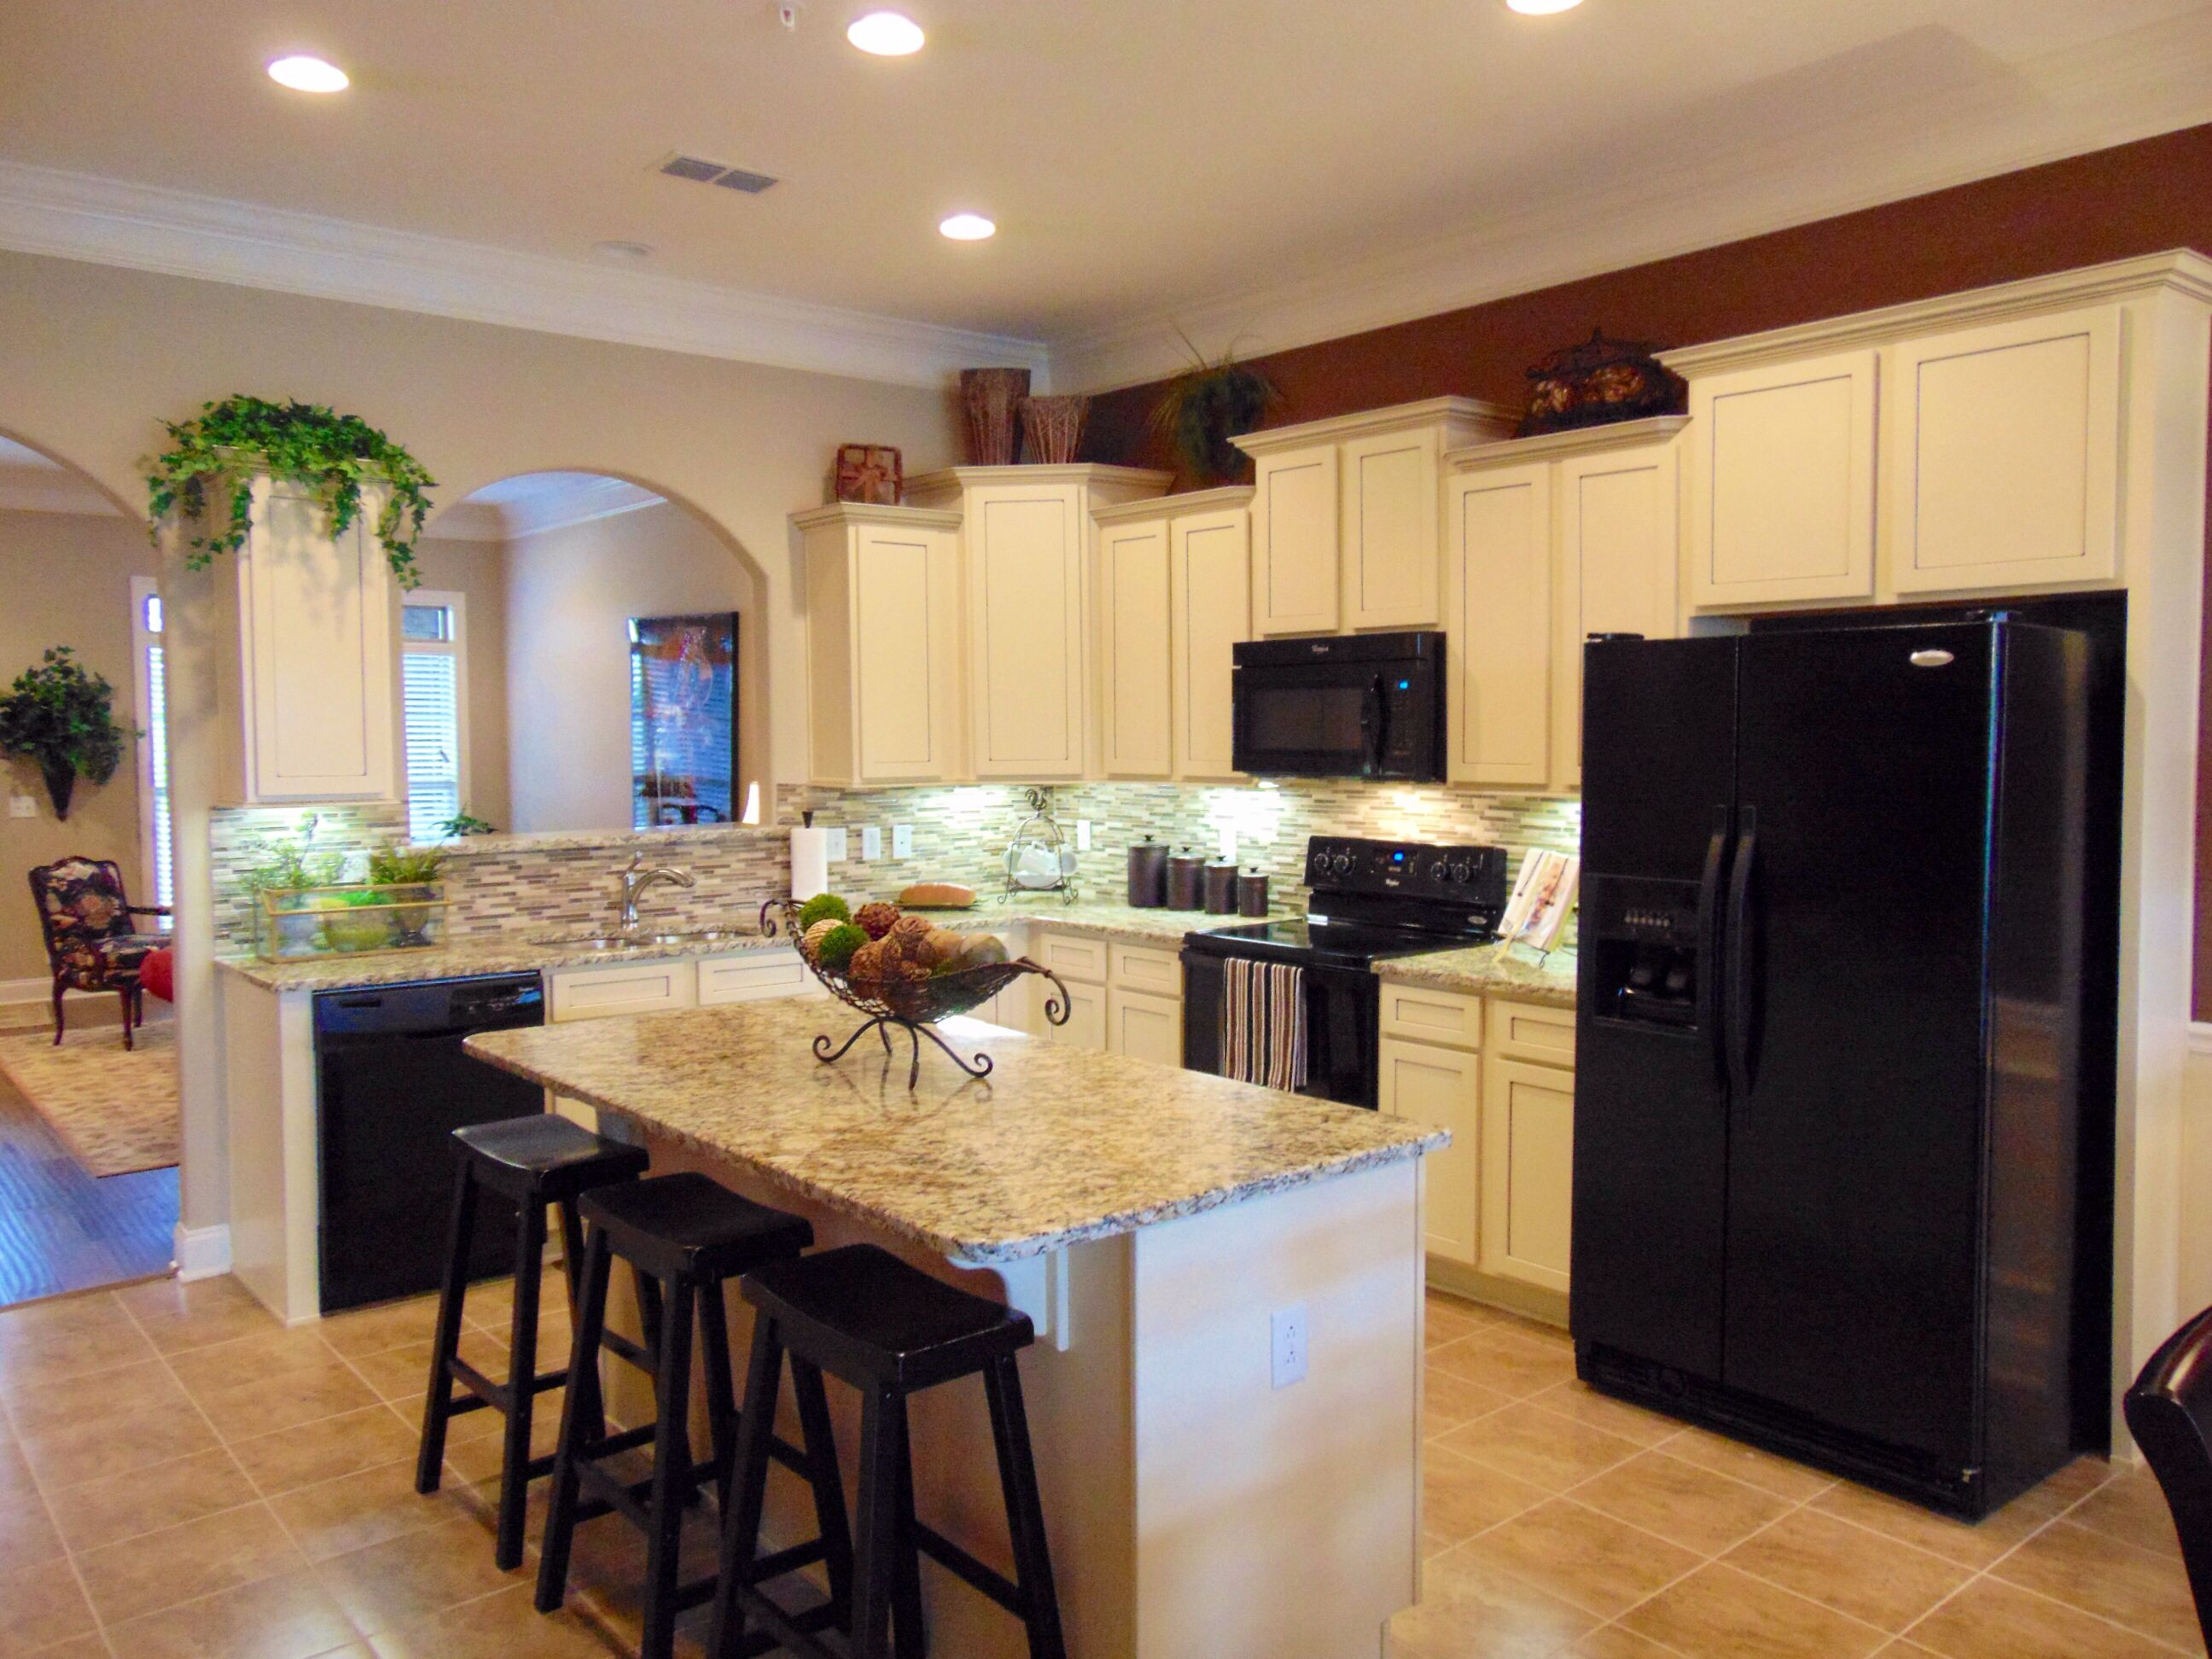 Model Home Kitchen Stunning Model Home Kitchenole South Showcasing Staggered